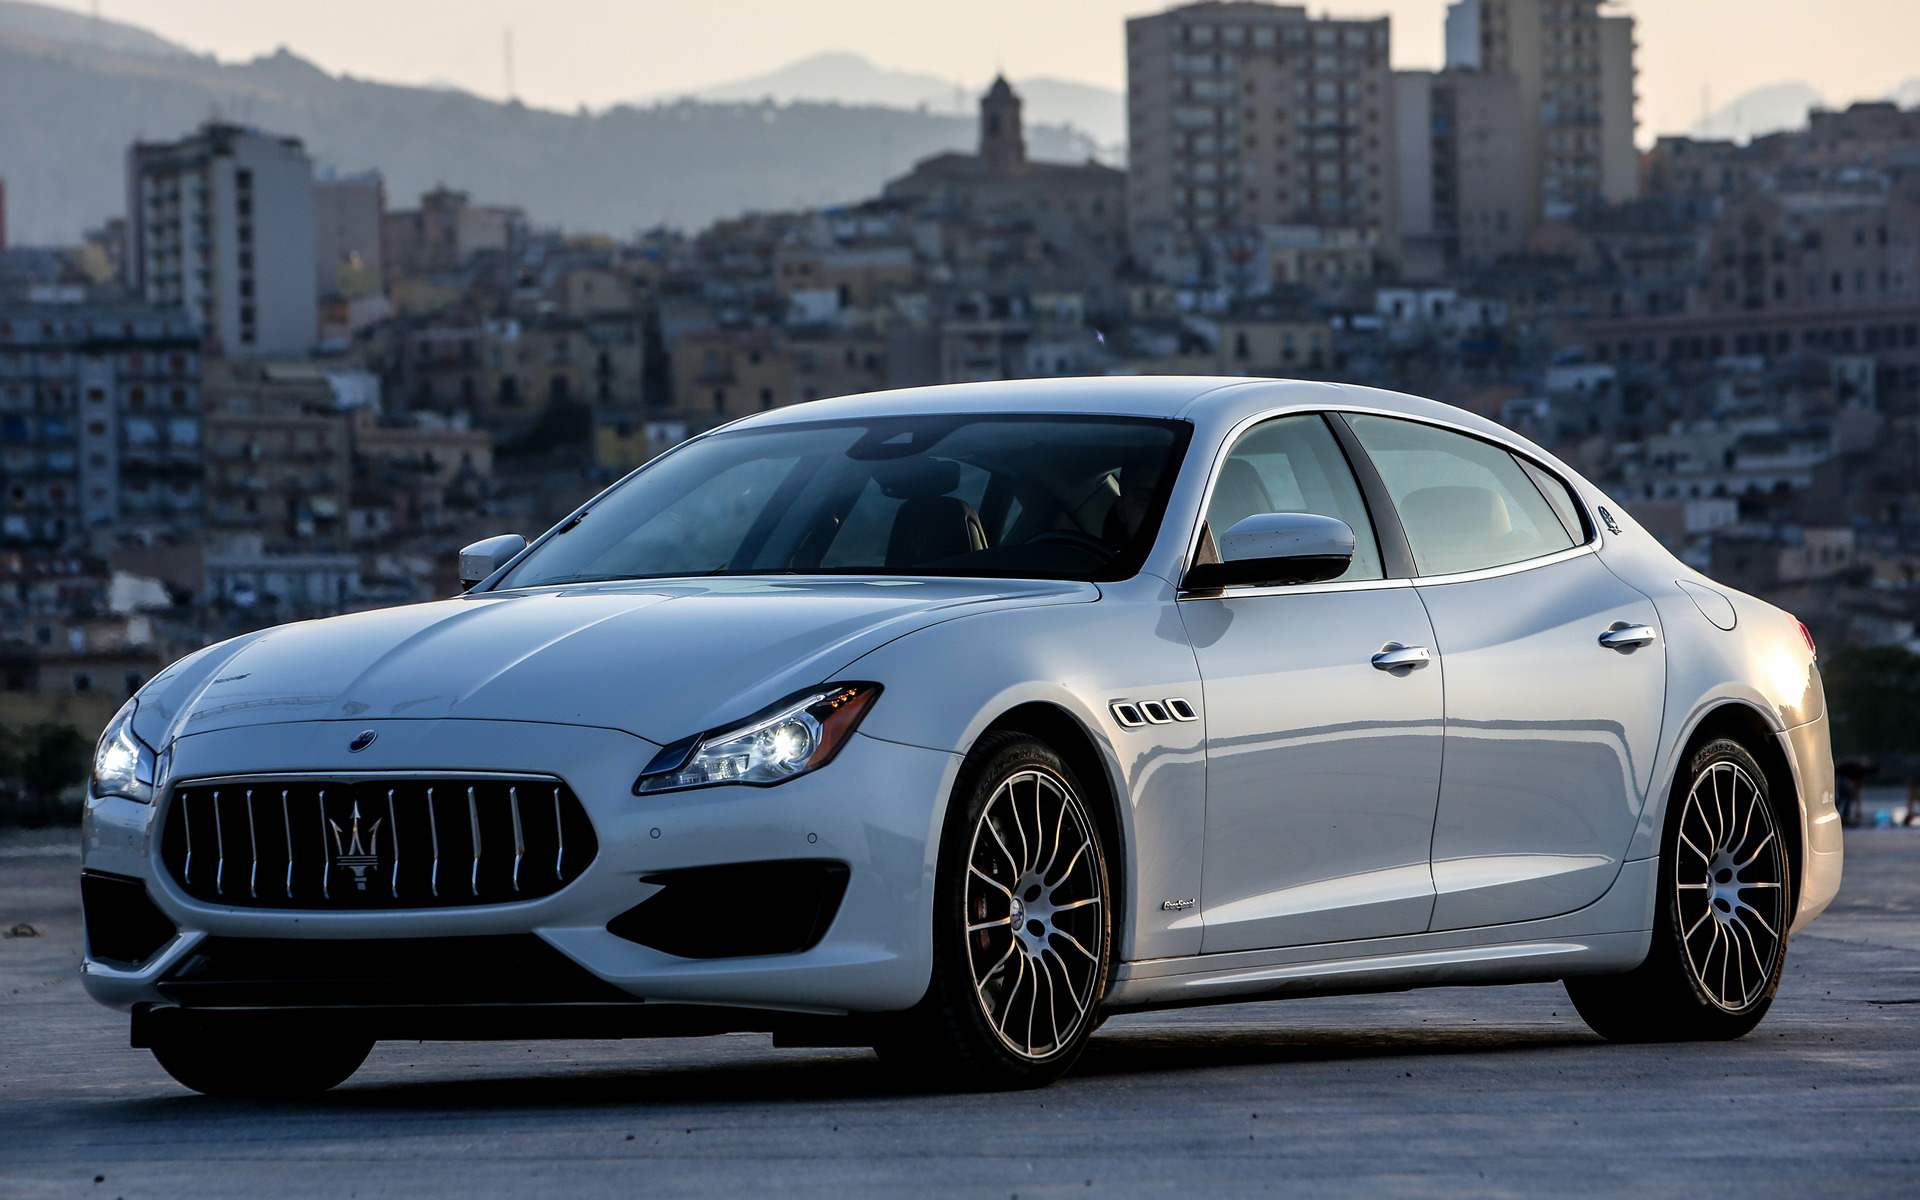 Maserati Quattroporte Gts Gransport 2016 Wallpapers And